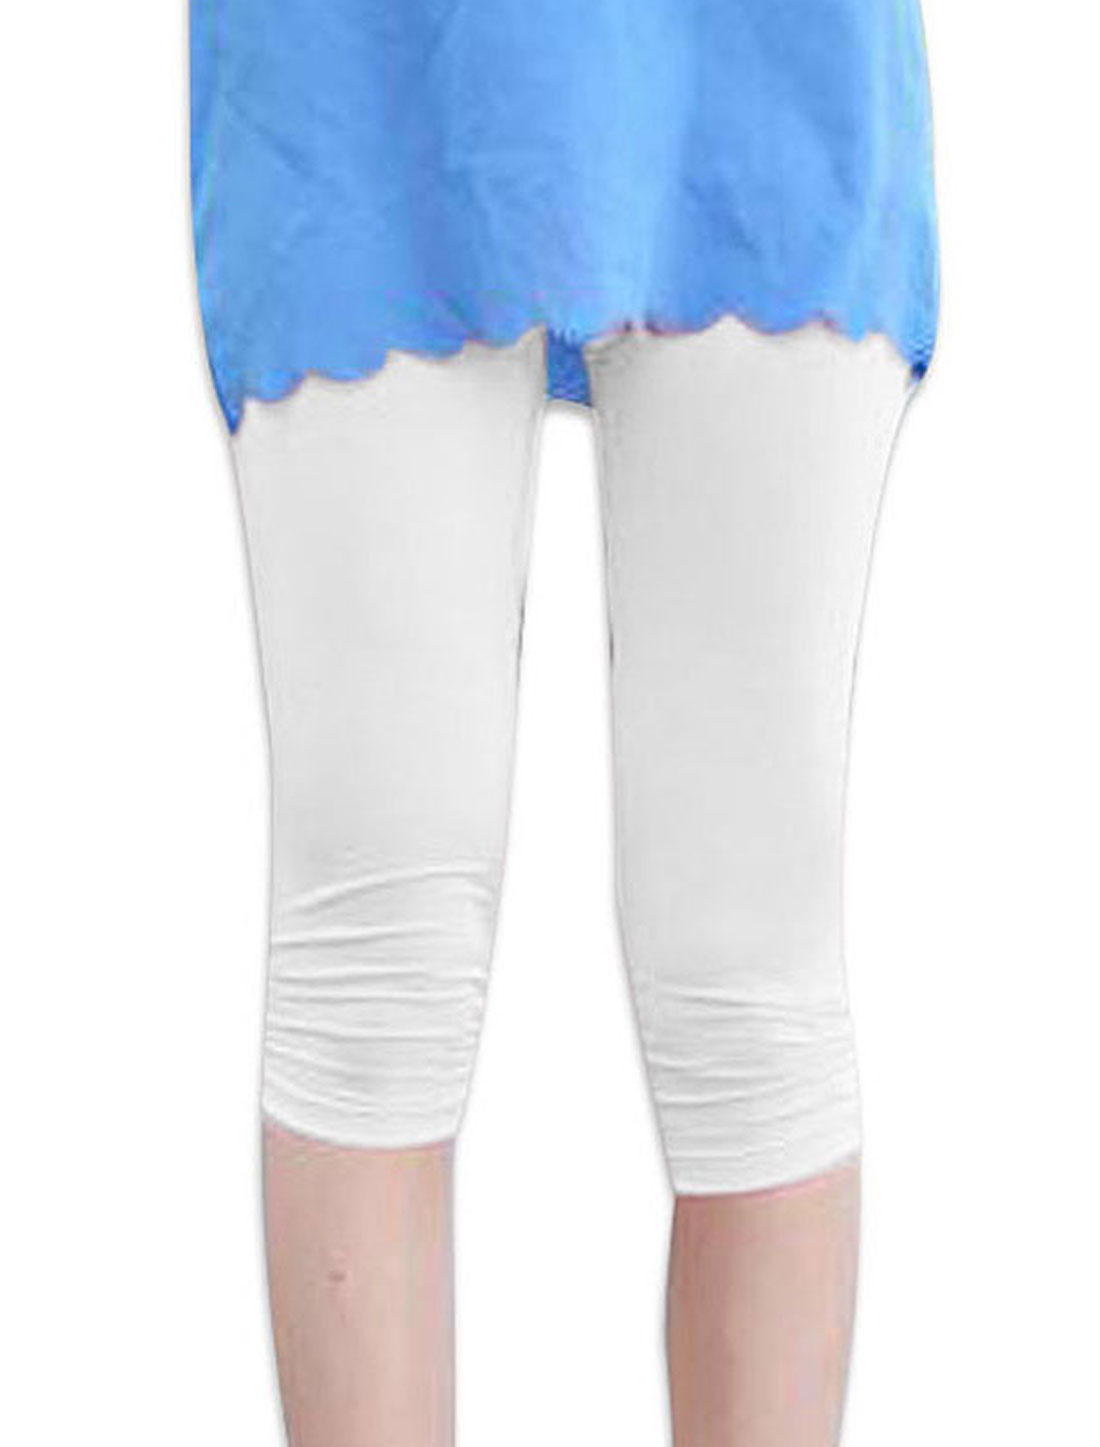 XS White Elastic Waist Slim Fit Design Form-fitting Women Fashion Leggings